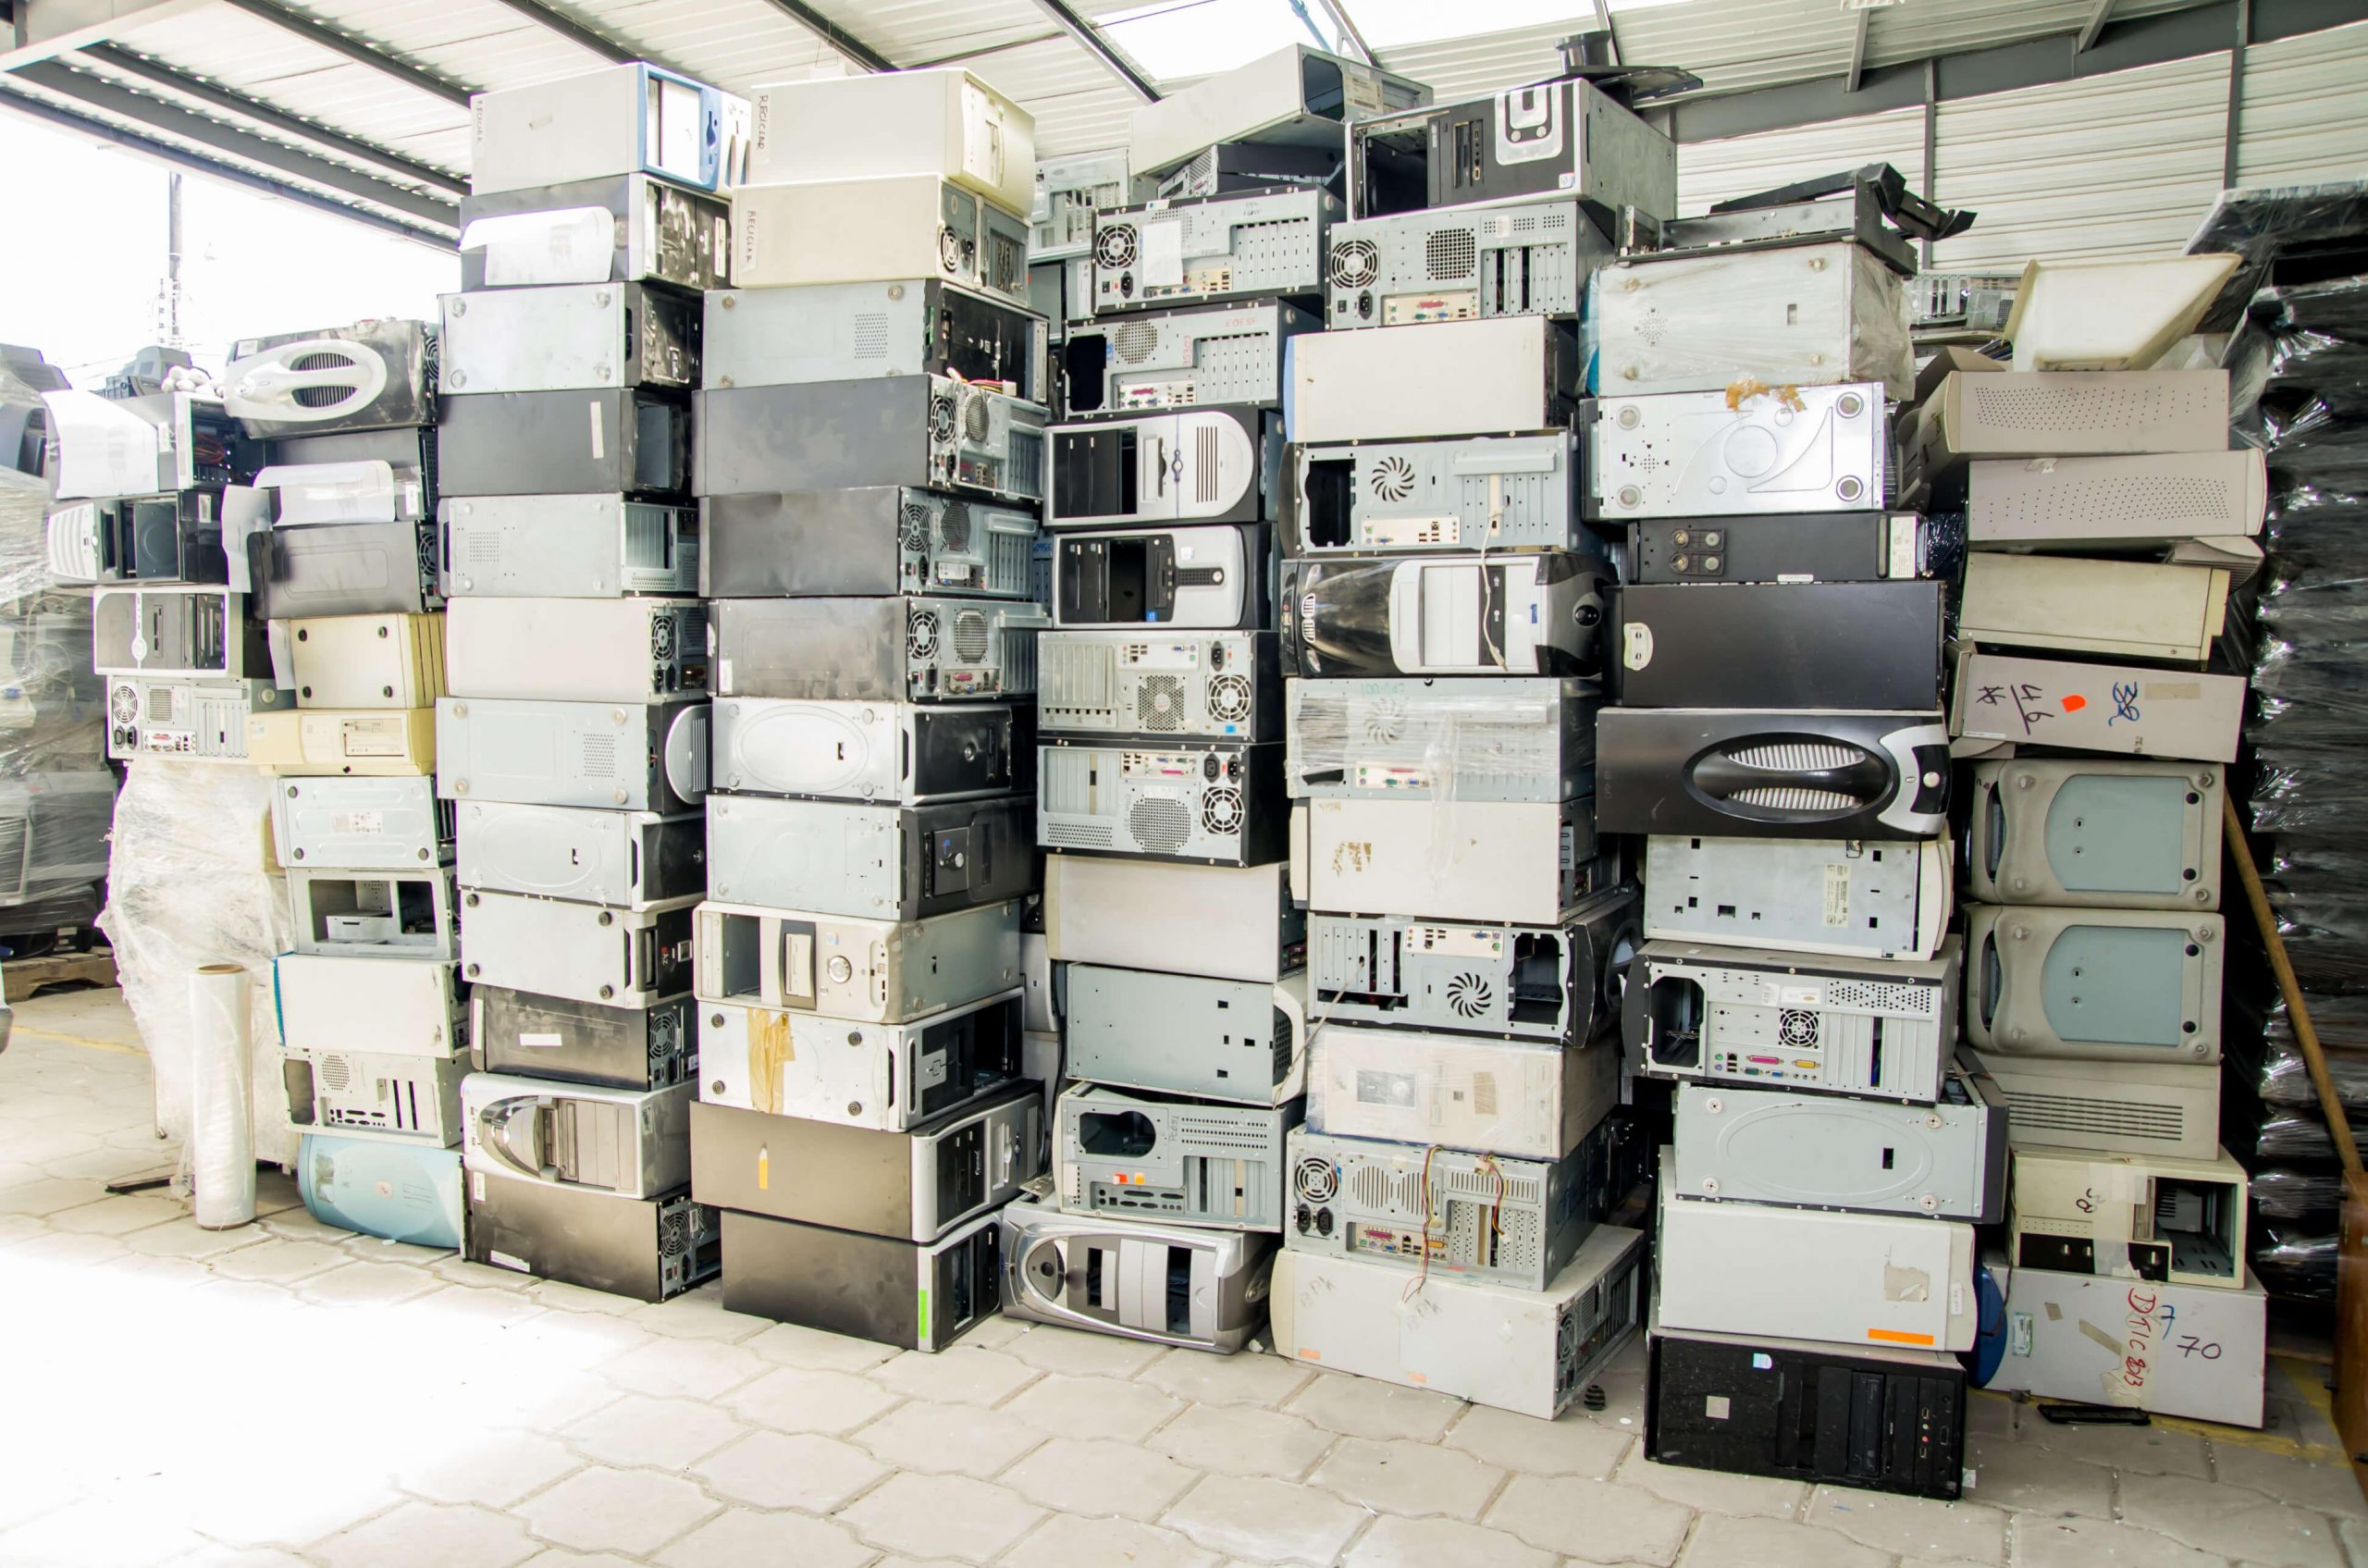 The Inevitable Obsolescence of Servers, or How Microsoft 365 Has Fundamentally Changed Law Firm IT